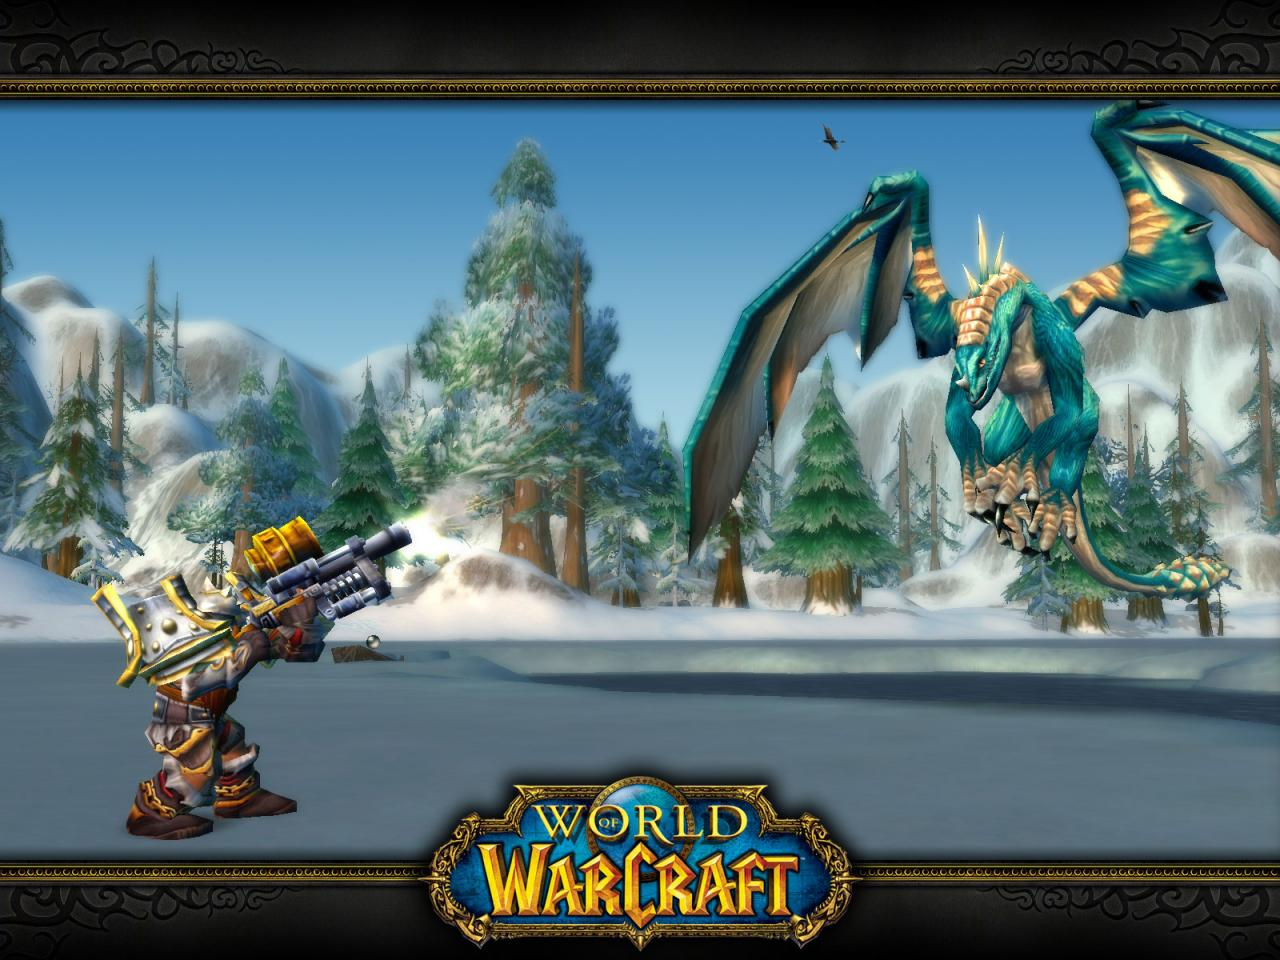 Wallpaper Word of Warcraft WoW dragon hunting